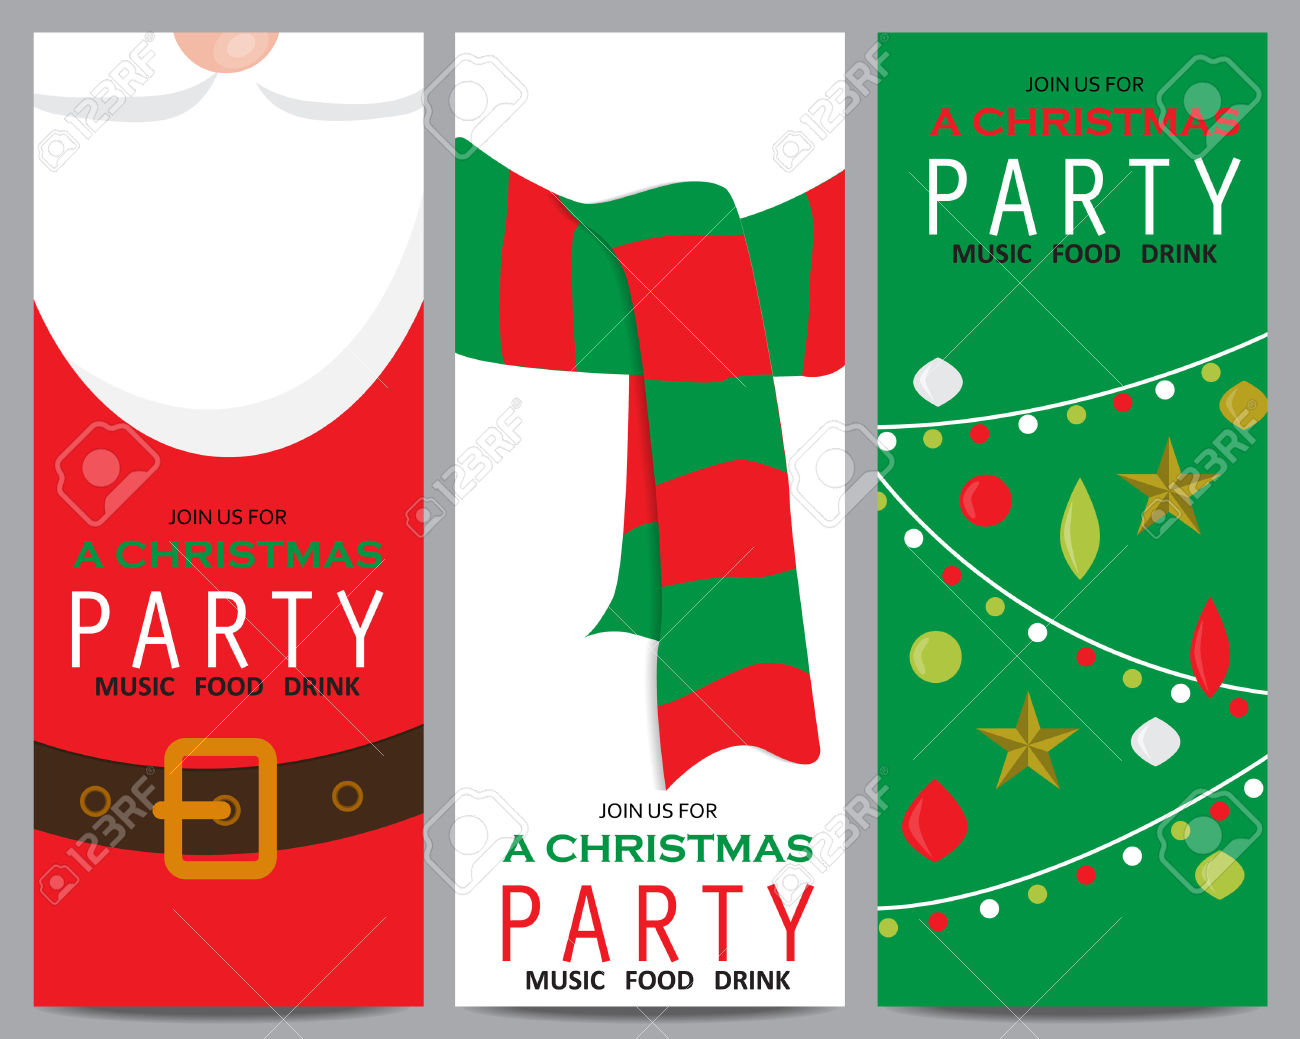 contemporary free holiday party invitations templates crest